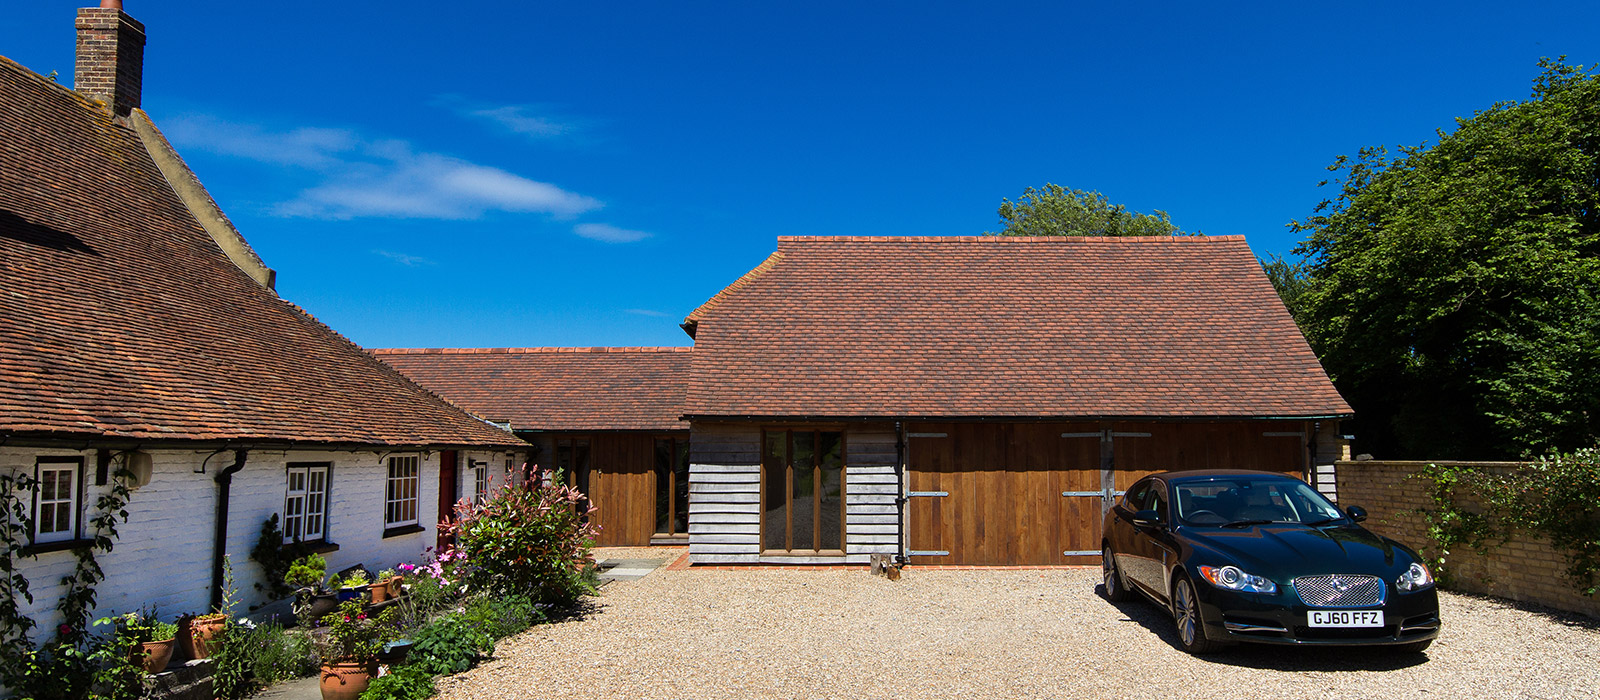 gyd-architecture - The Old Farmhouse Canterbury